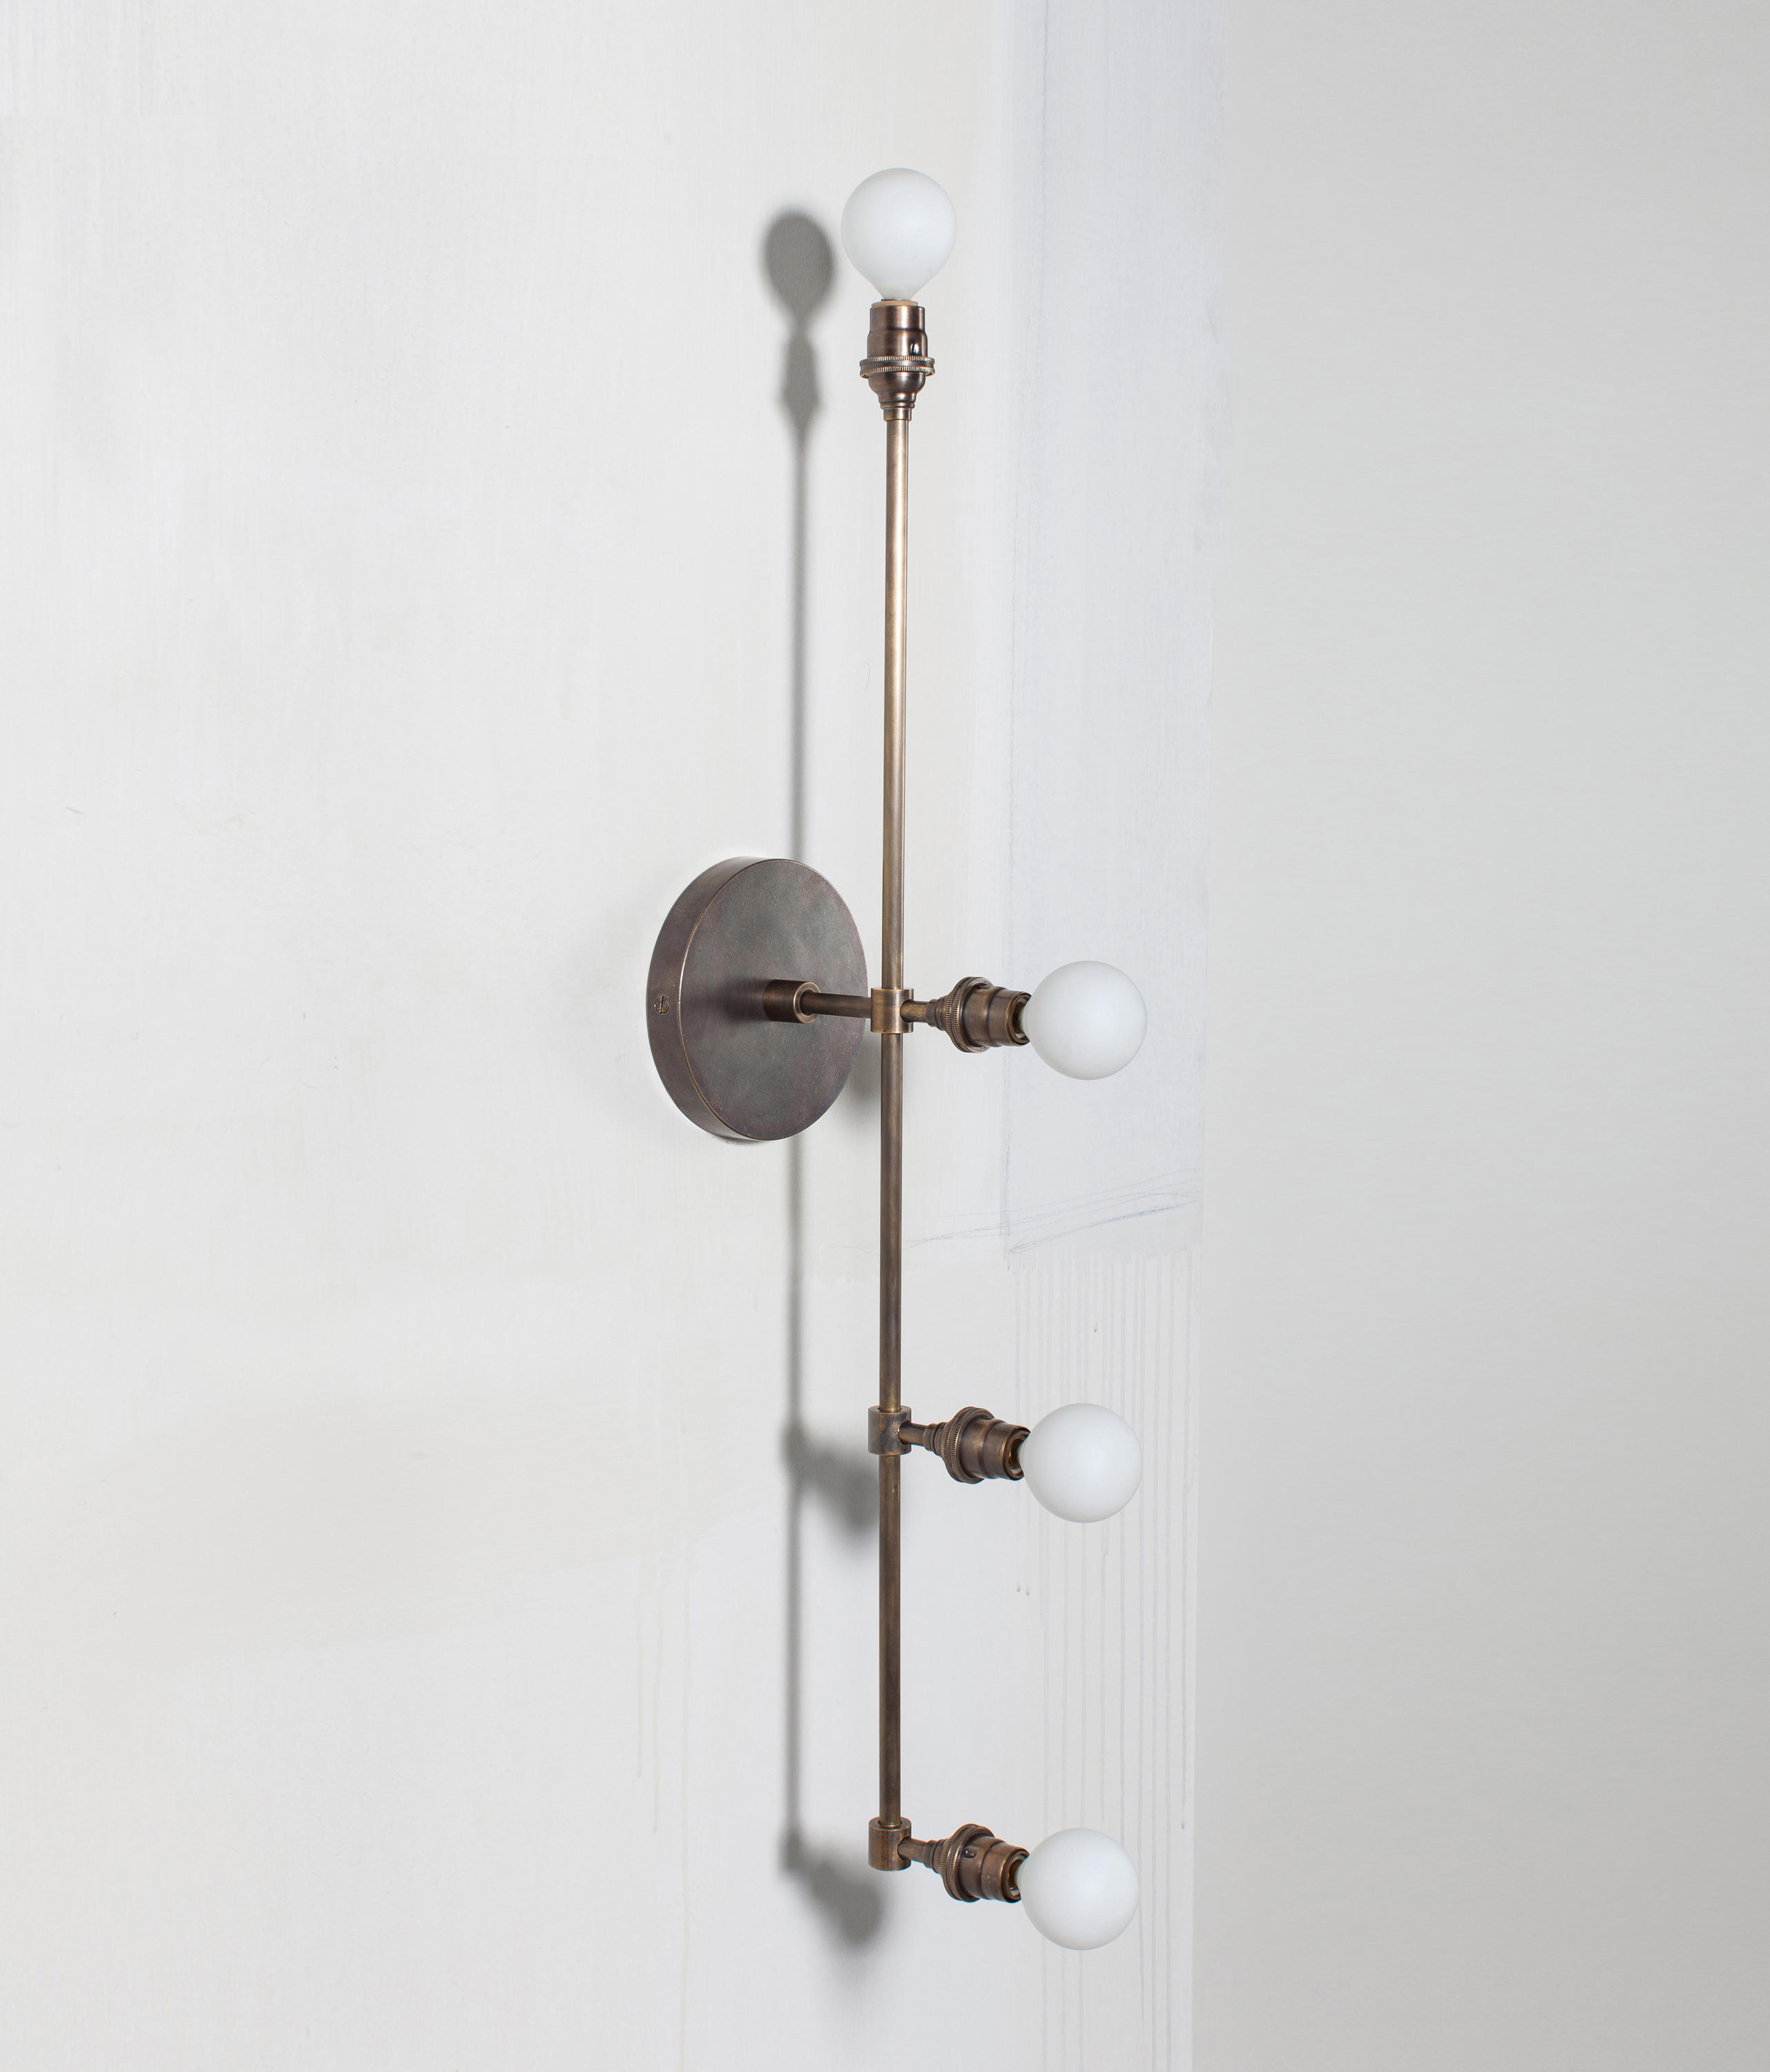 Vanity Sconce Wall Lights From Apparatus Architonic